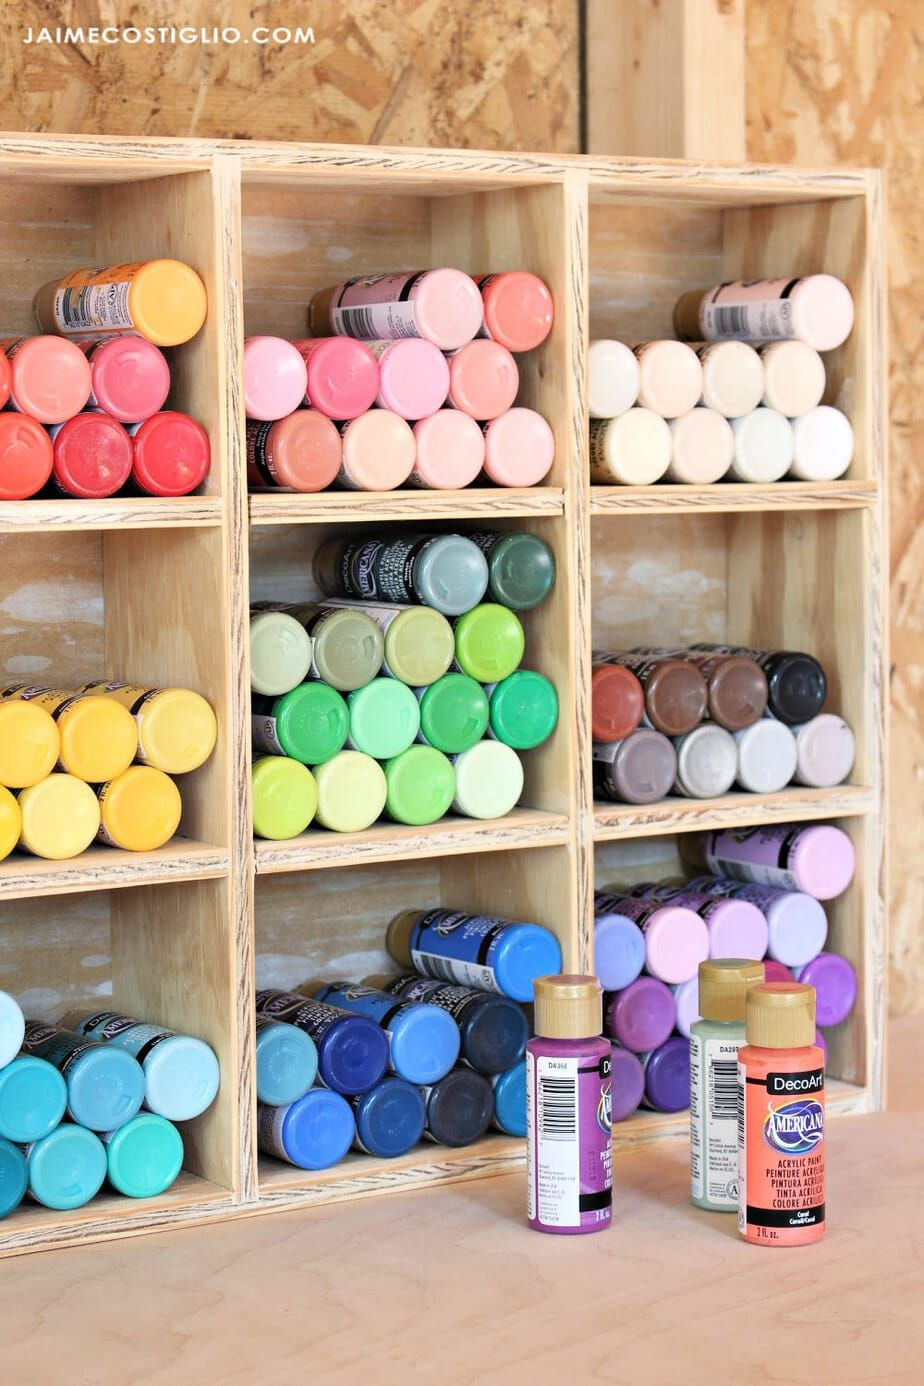 A DIY tutorial to build a craft paint storage container using scrap plywood Organize your craft paints in a tidy and user friendly display shelf